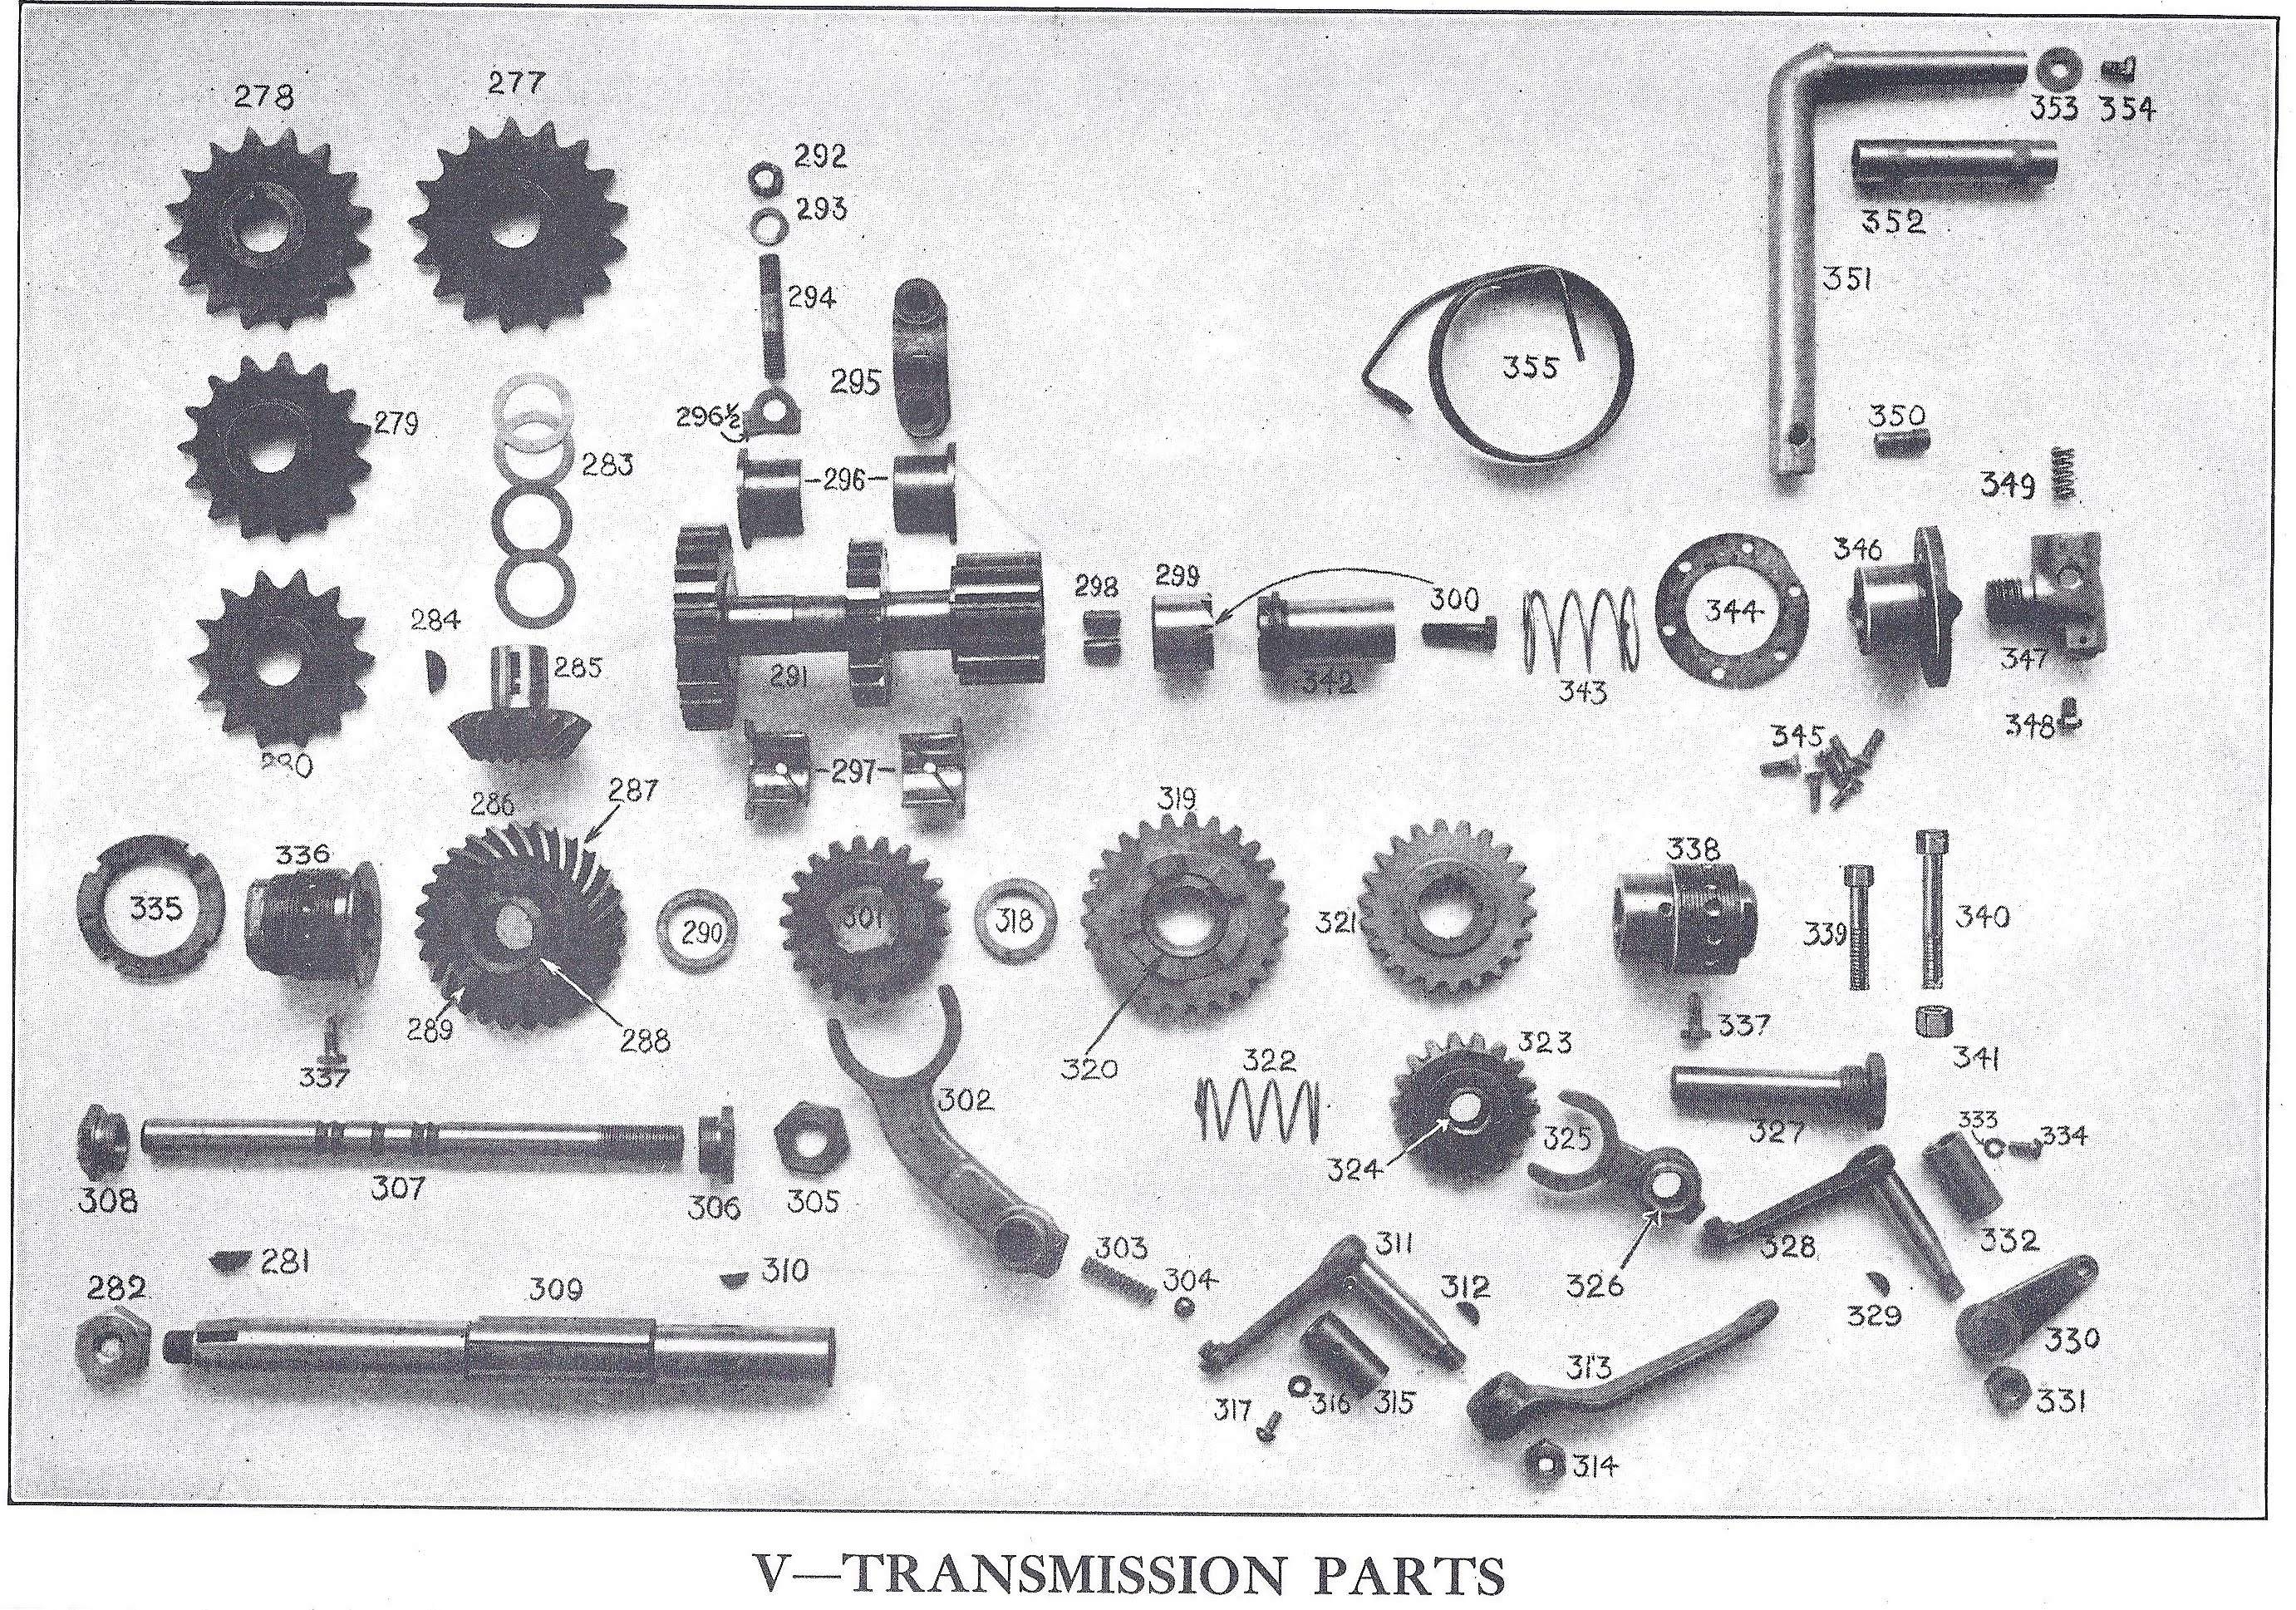 Transmission Parts - The Henderson Motorcycle Co  (Excelsior